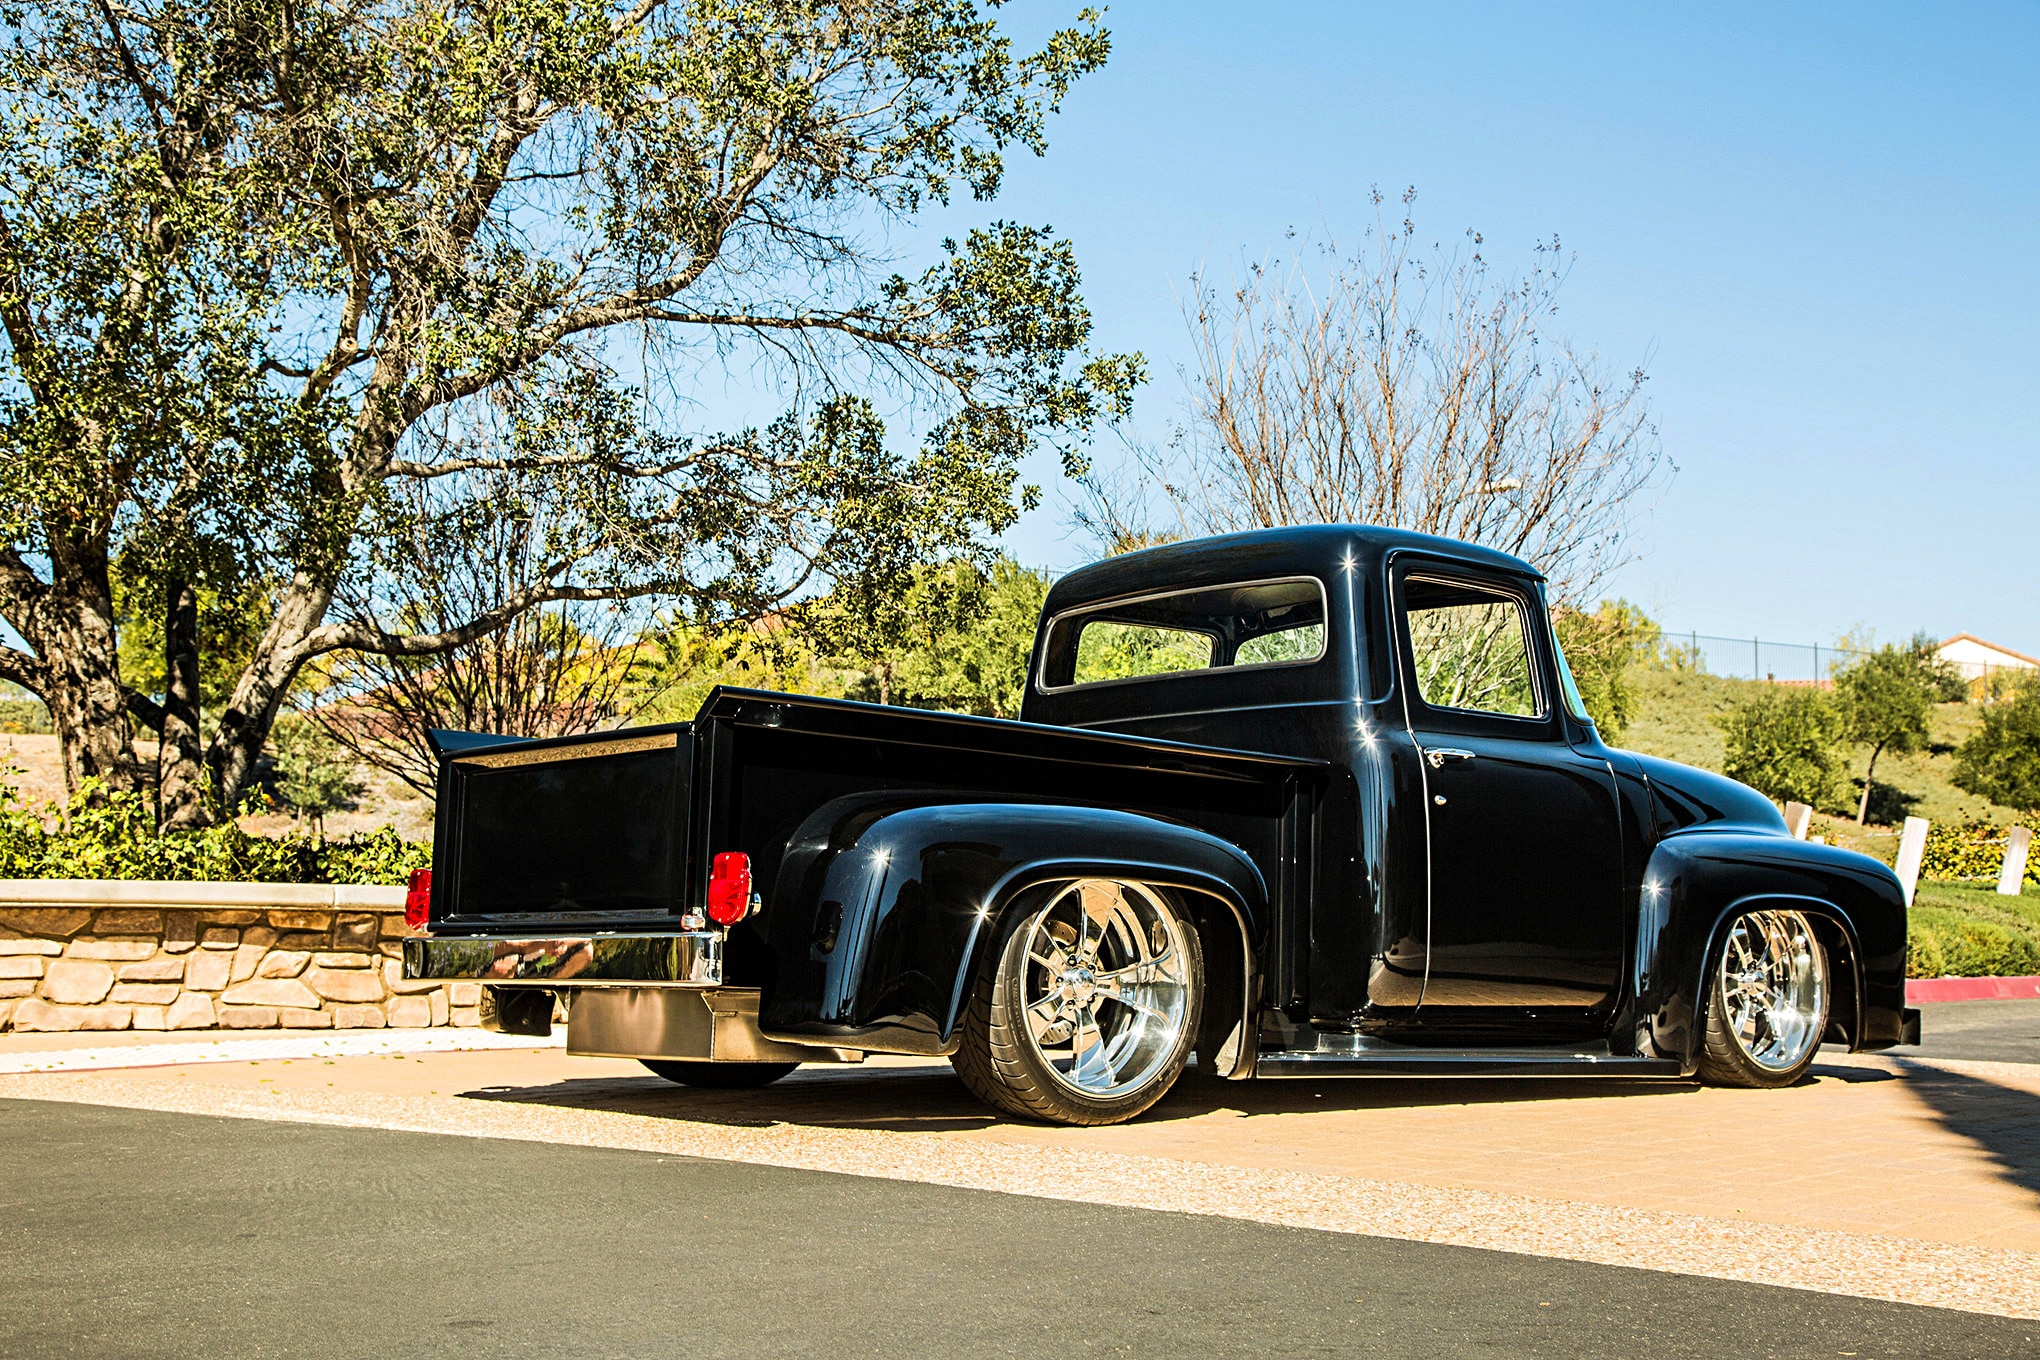 craigslist inland empire cars and trucks by owner ly craigslist